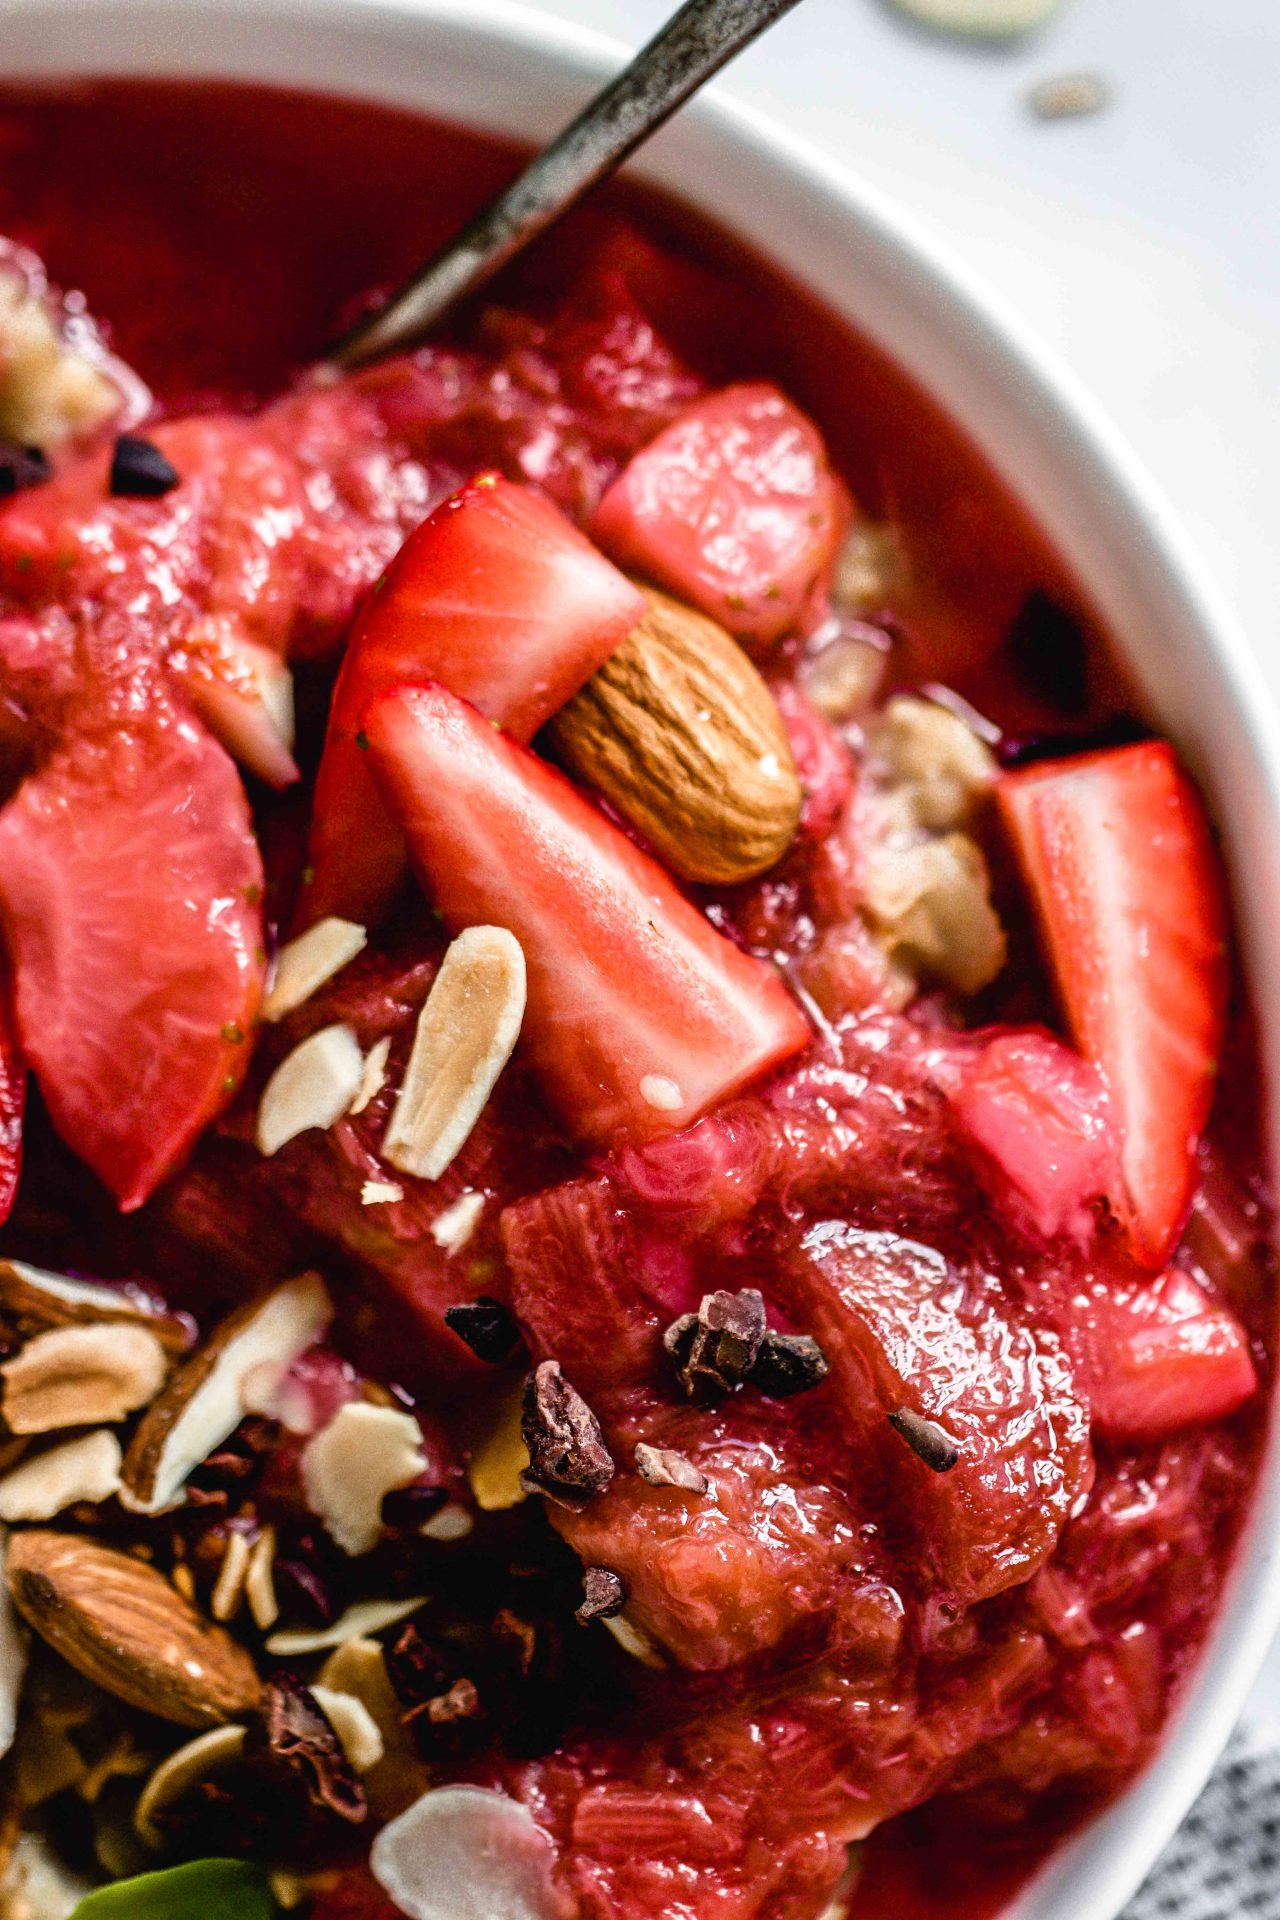 Vanilla Porridge with a Strawberry Rhubarb Compote